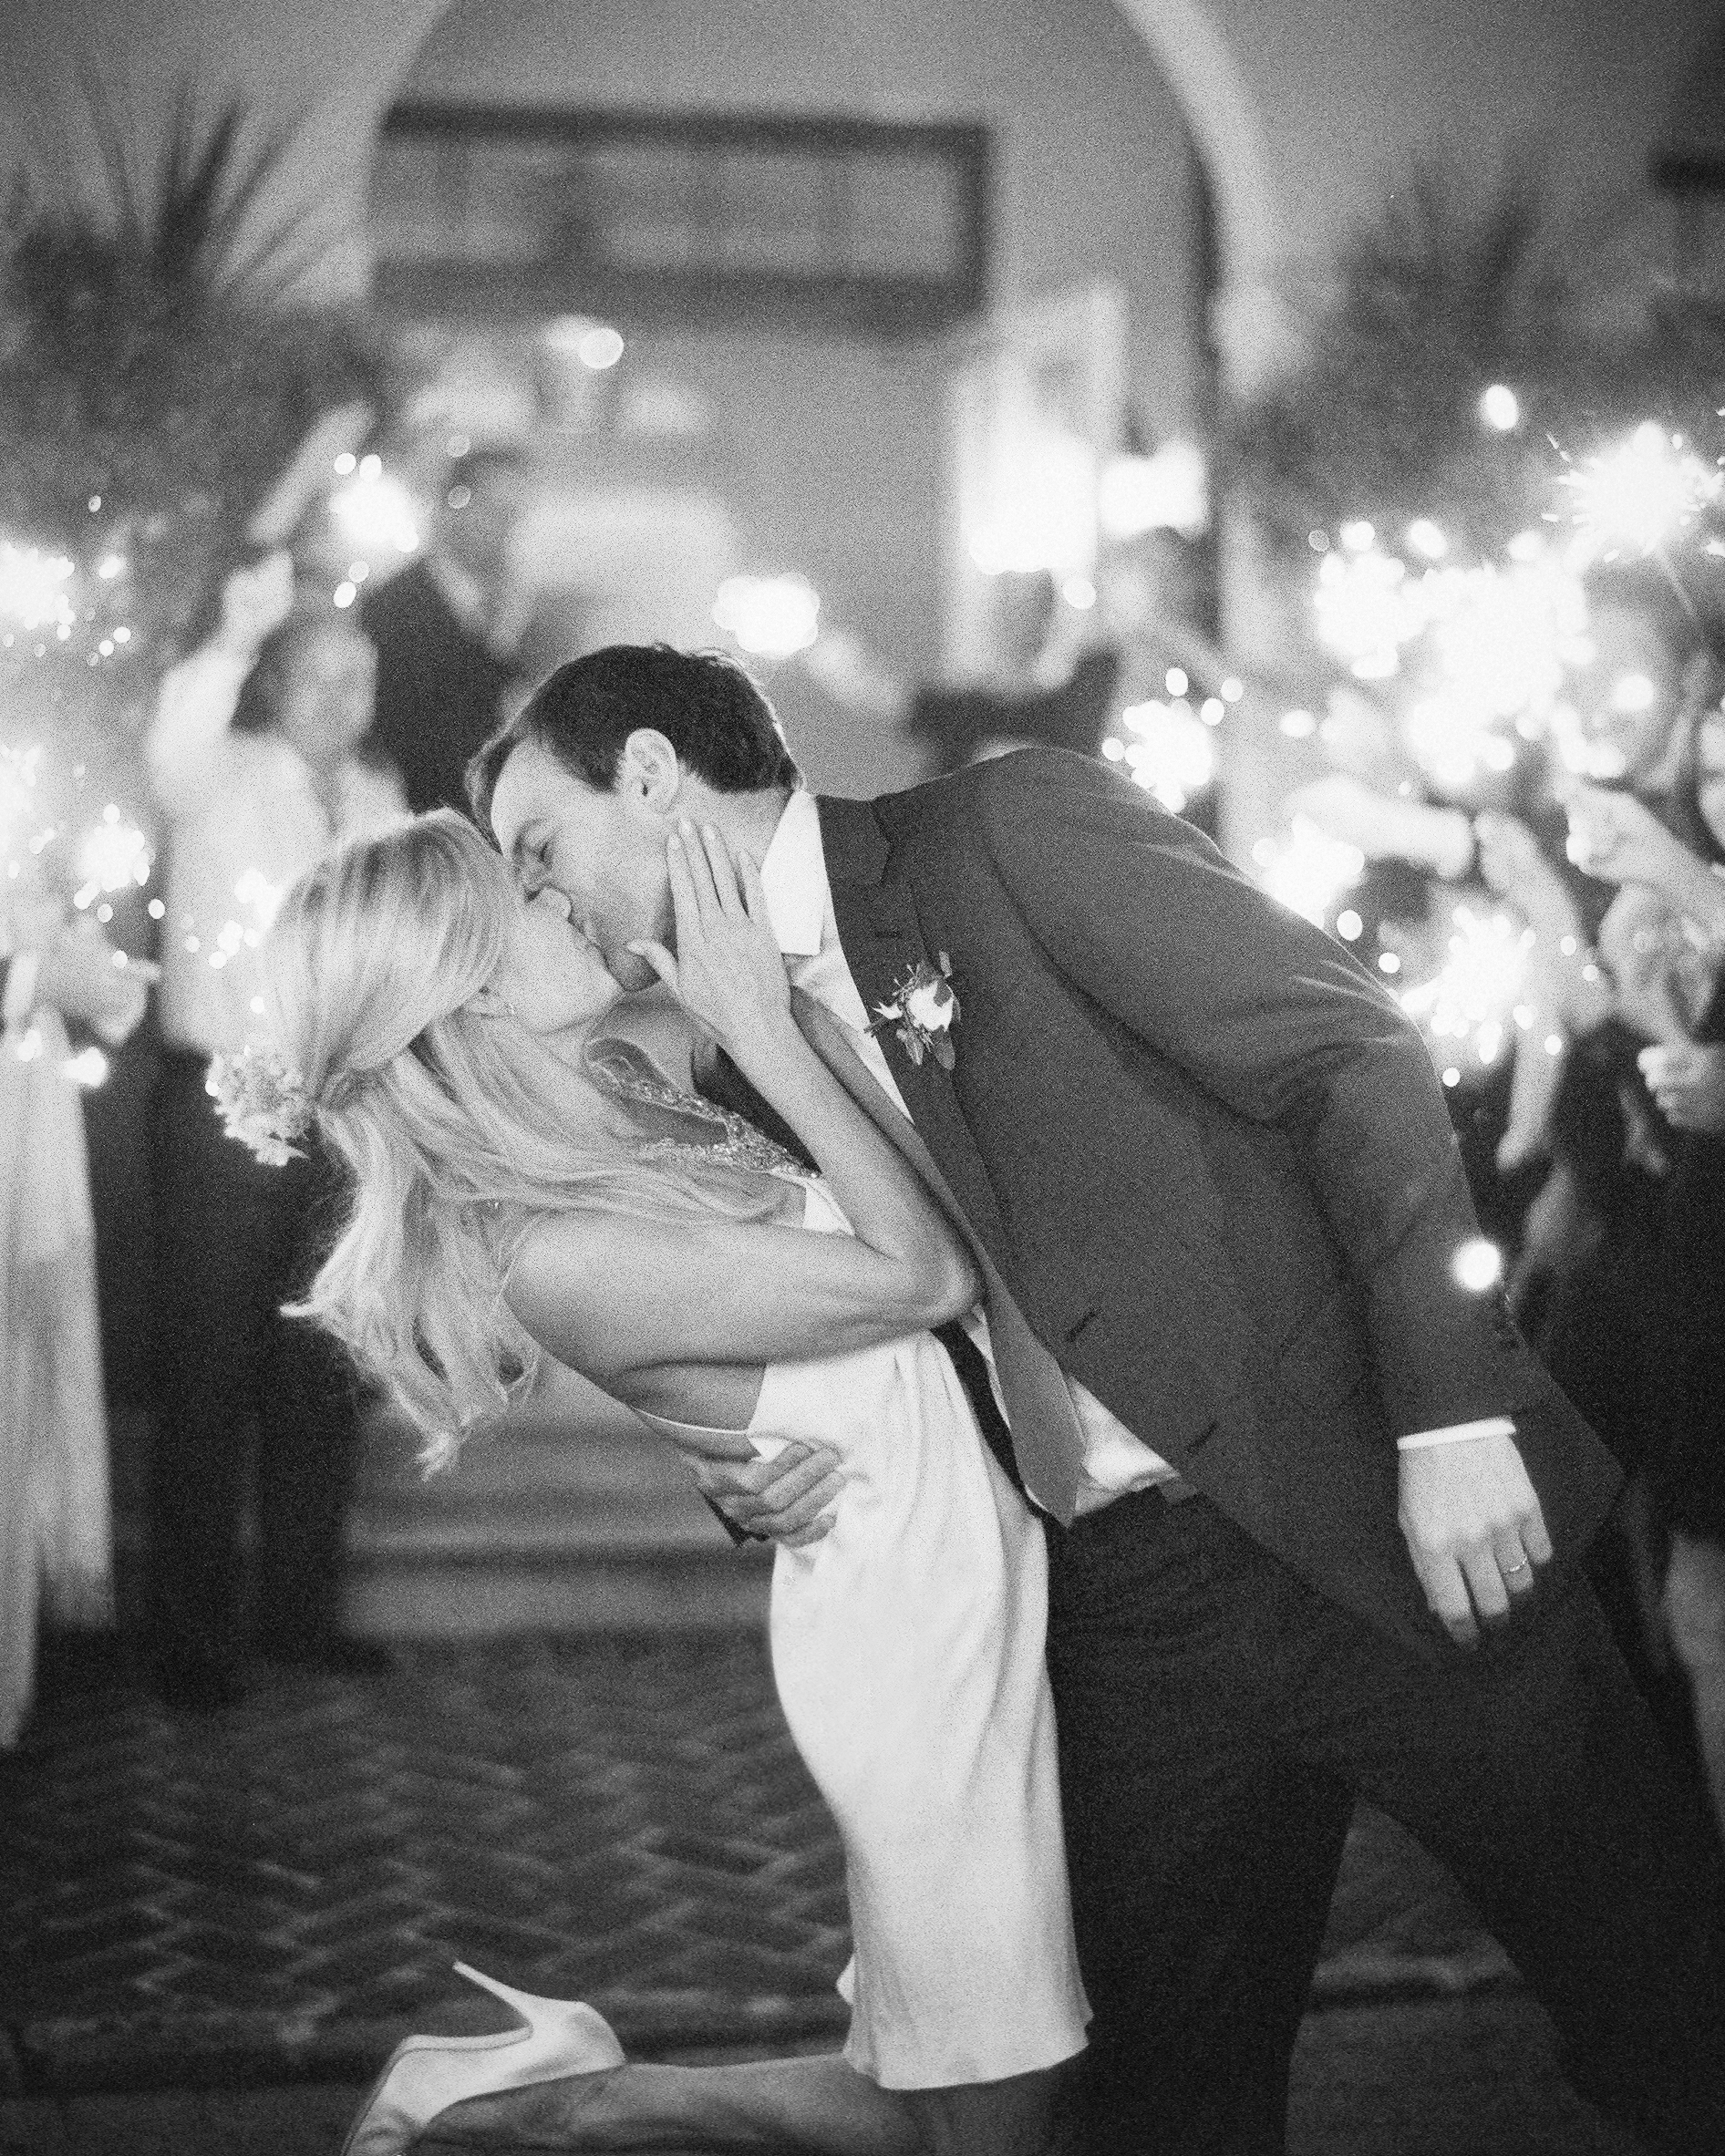 kiss-brideandgroom-bw-059-70005-mwds110148.jpg